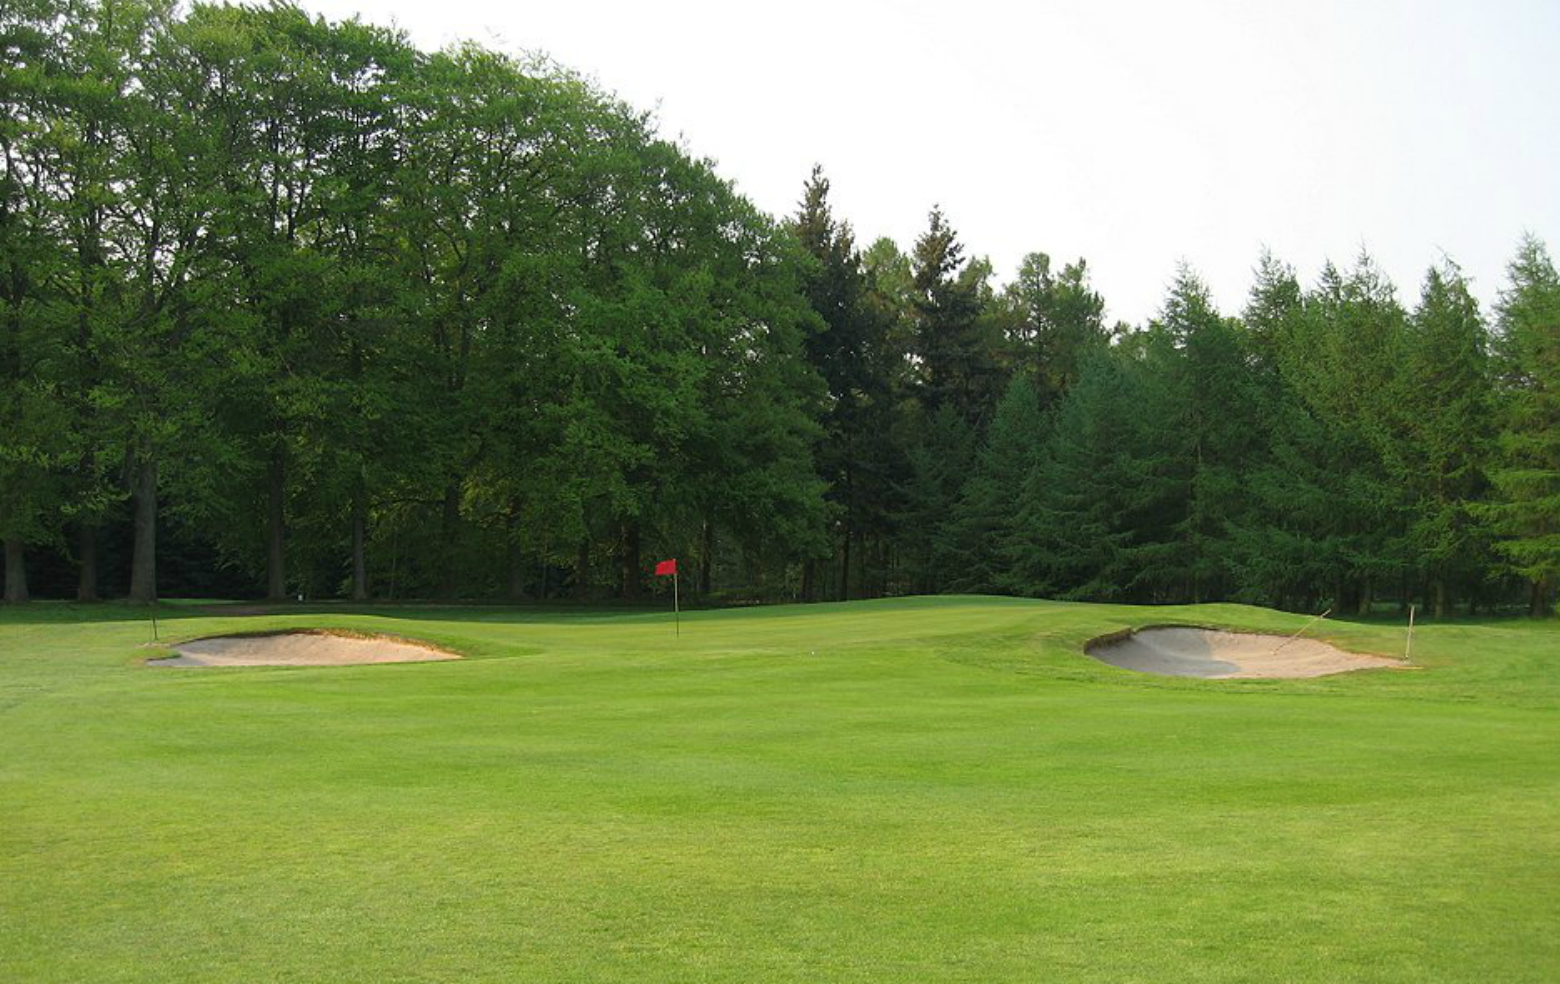 Hole 13 green before. This image is also taken before the front rightbunker was changed in-house in recent years.